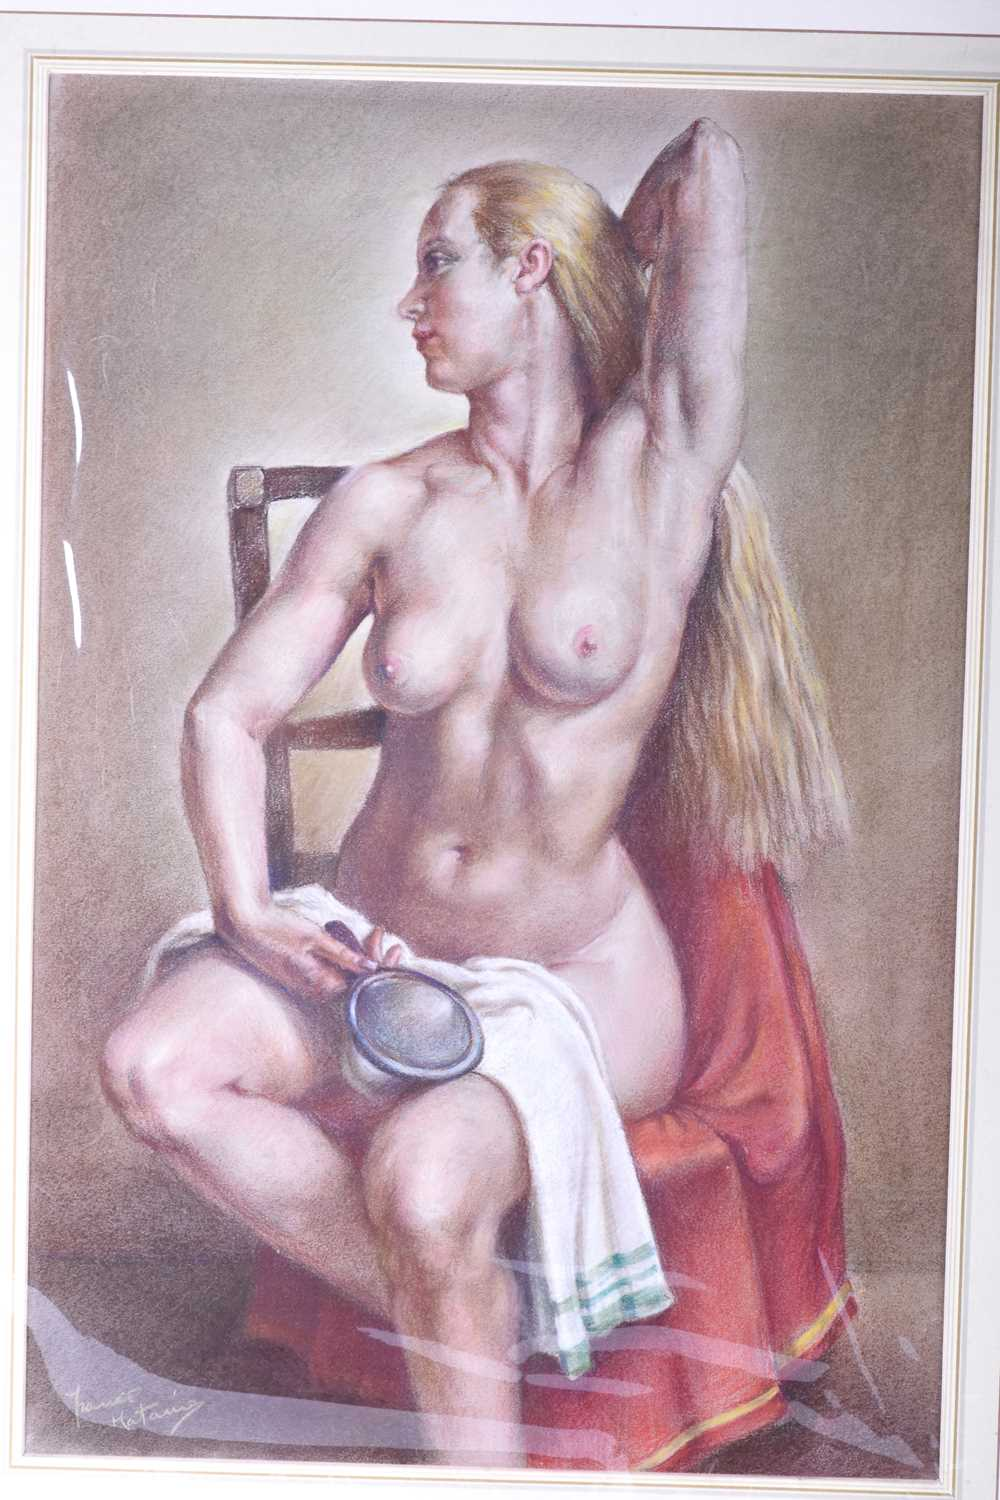 Lot 48 - Franco Matania (1922-2006) Italian/British, a group of eight pastel sketches and portraits of nude